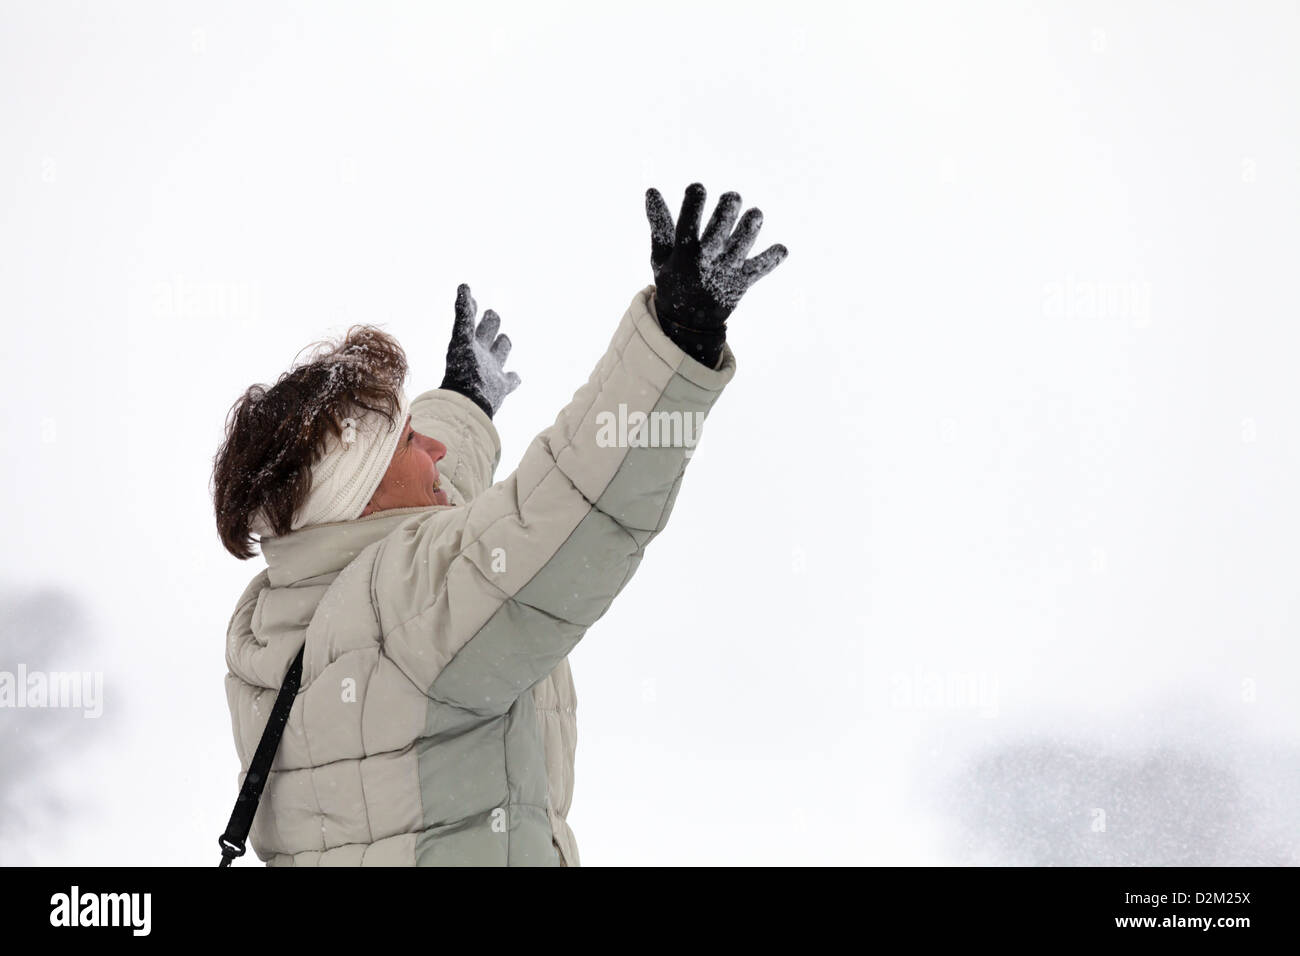 Ecstatic happy middle aged woman enjoying winter outdoors. - Stock Image